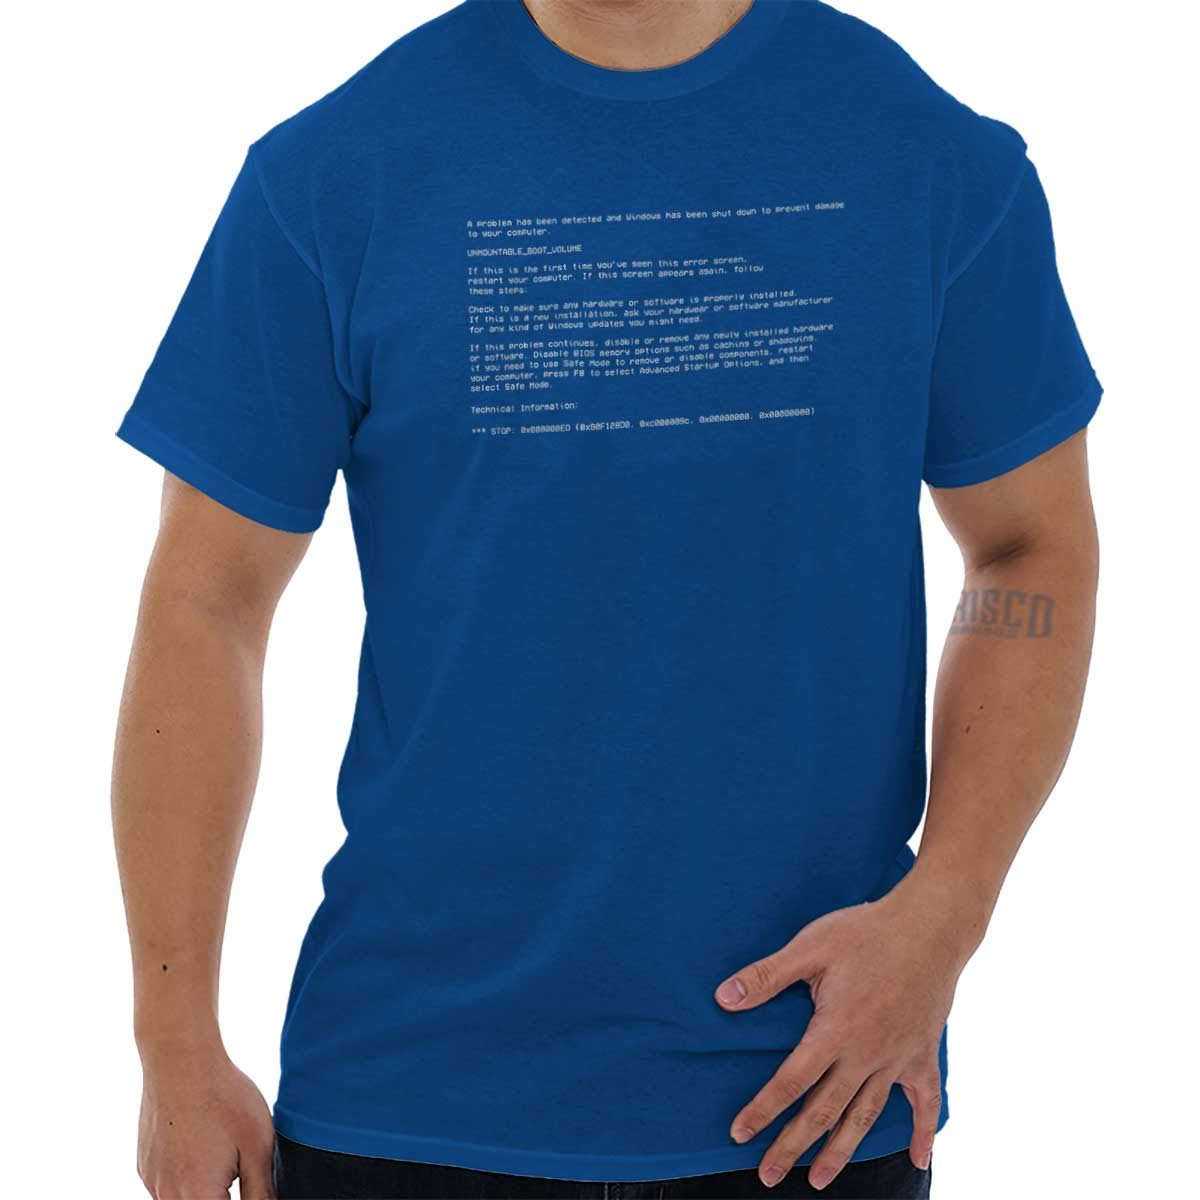 ccbb985fe14d Blue Screen of Death Virus Geeky Computers T Shirt Tee | Amazon.com